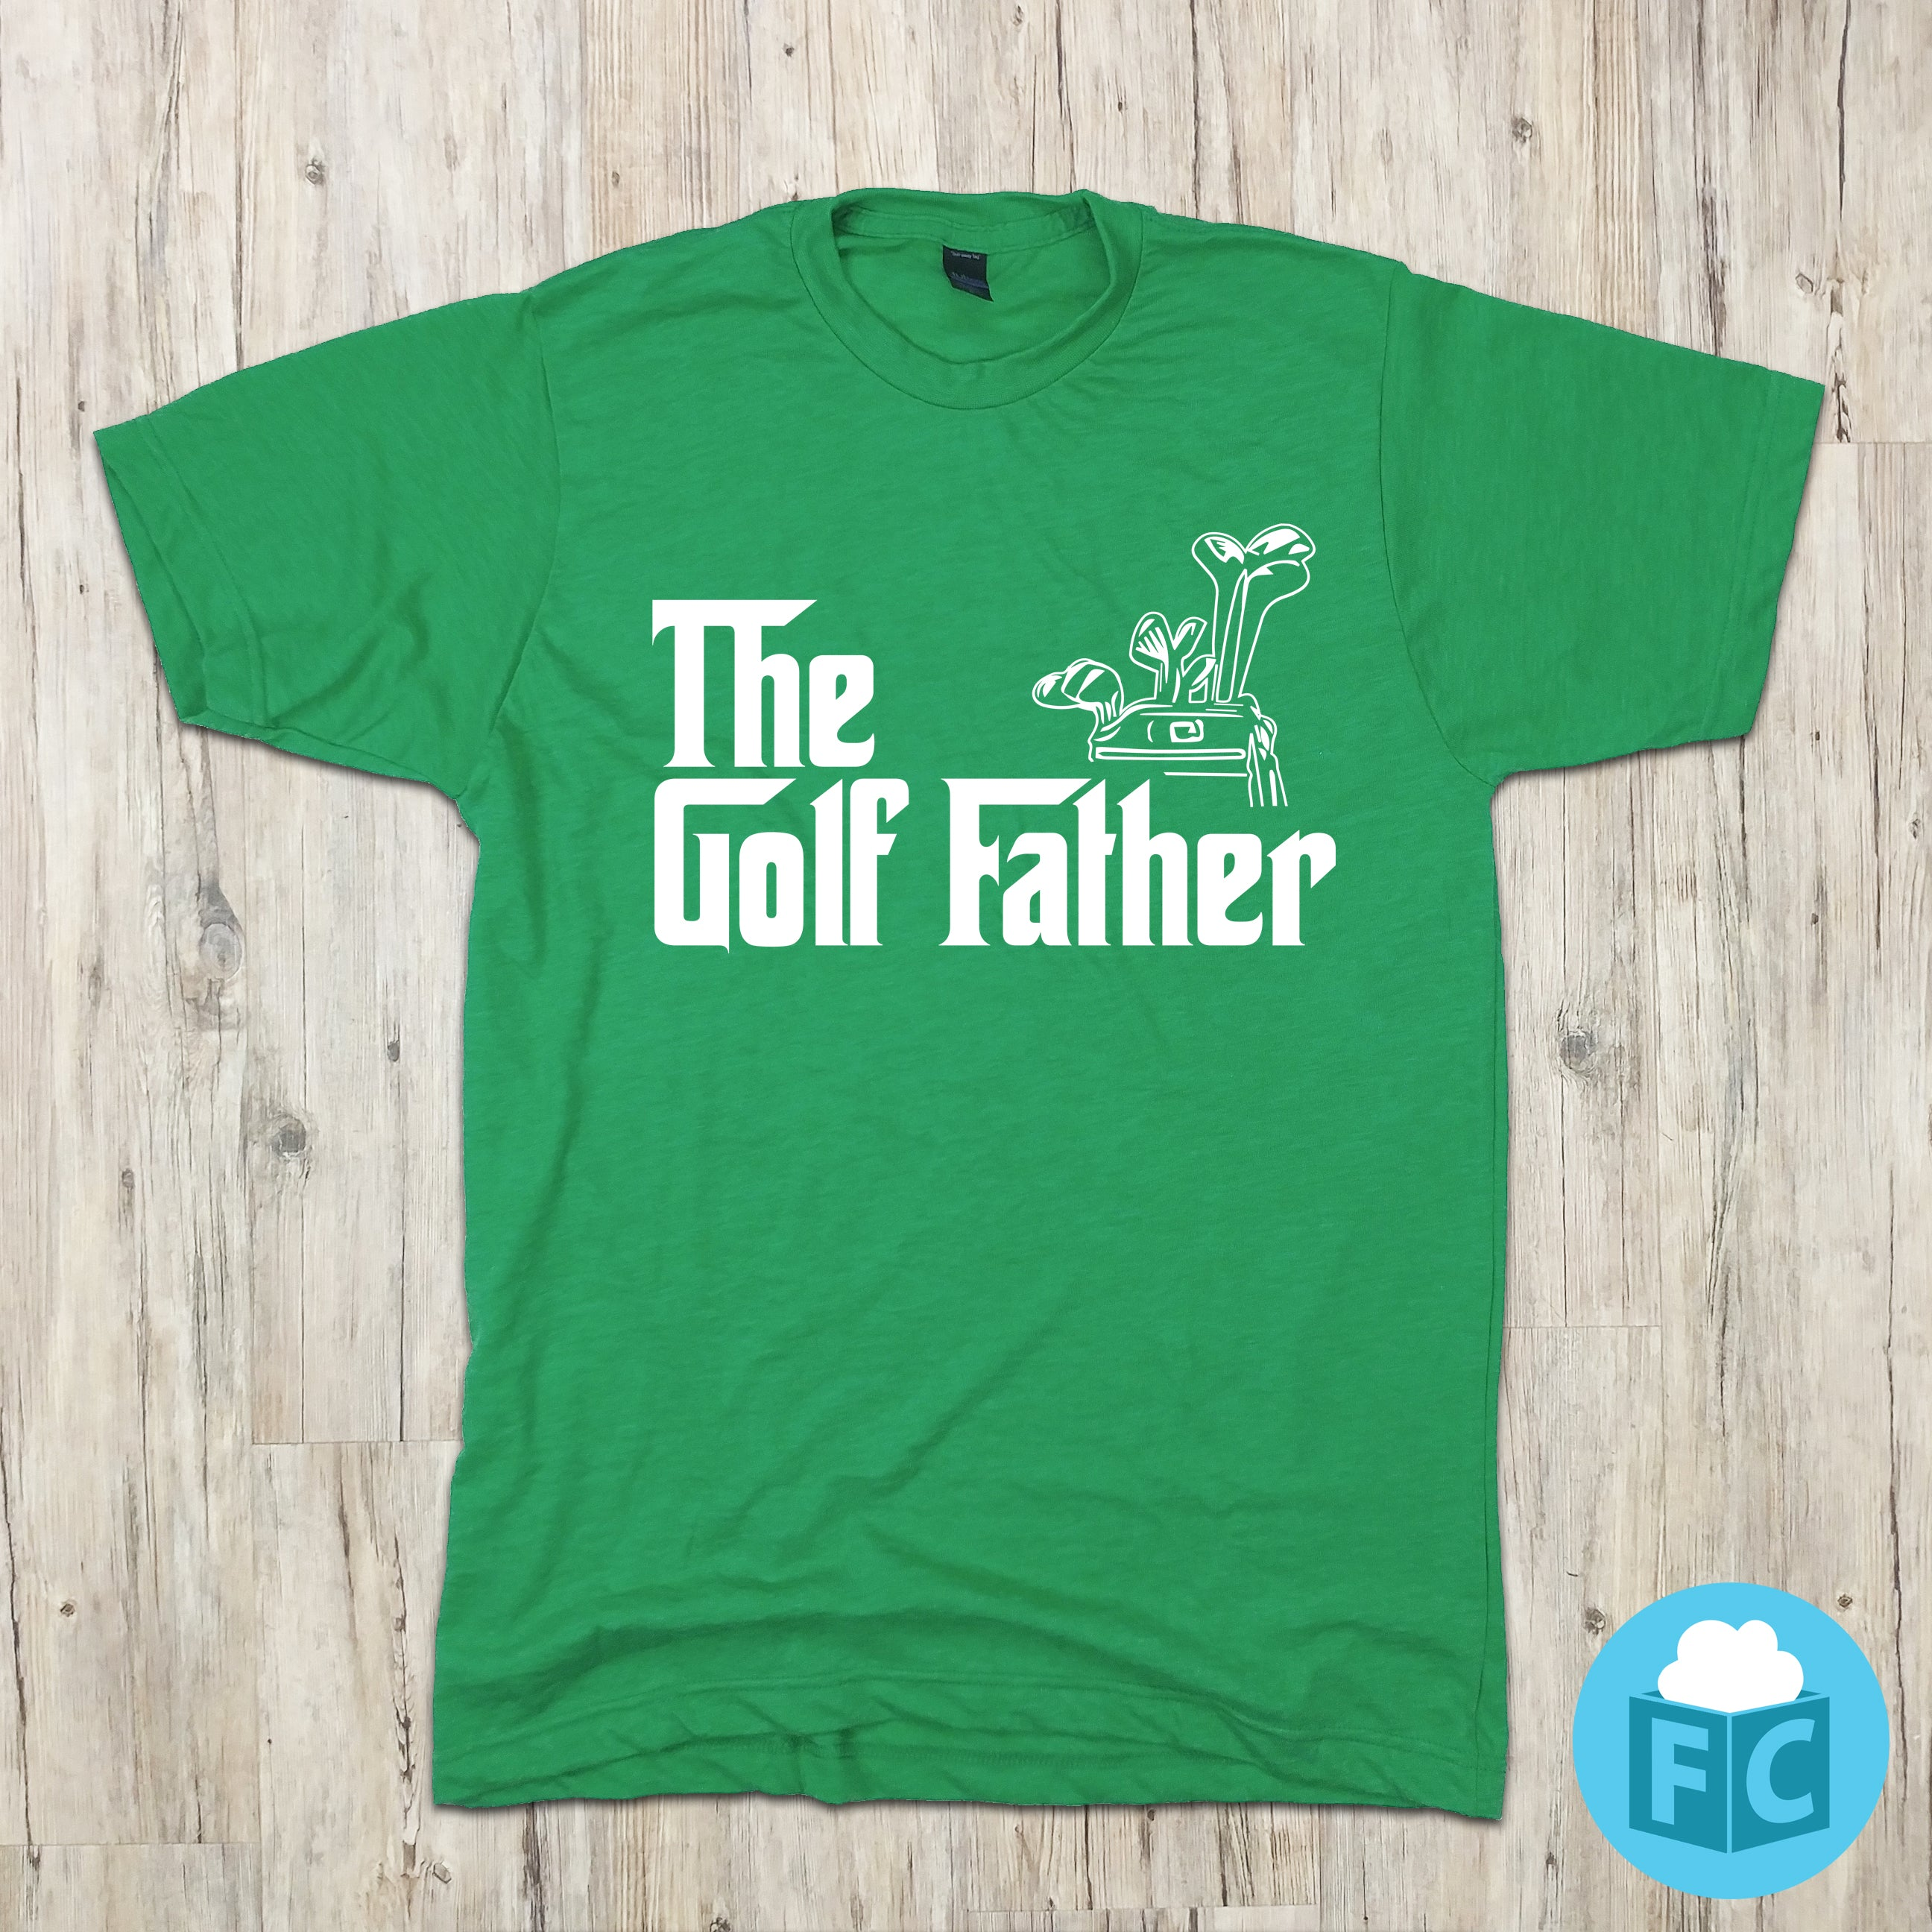 e3926188 The Golf Father | Movie Parody | Funny Sports Apparel | Fluffy Crate ...